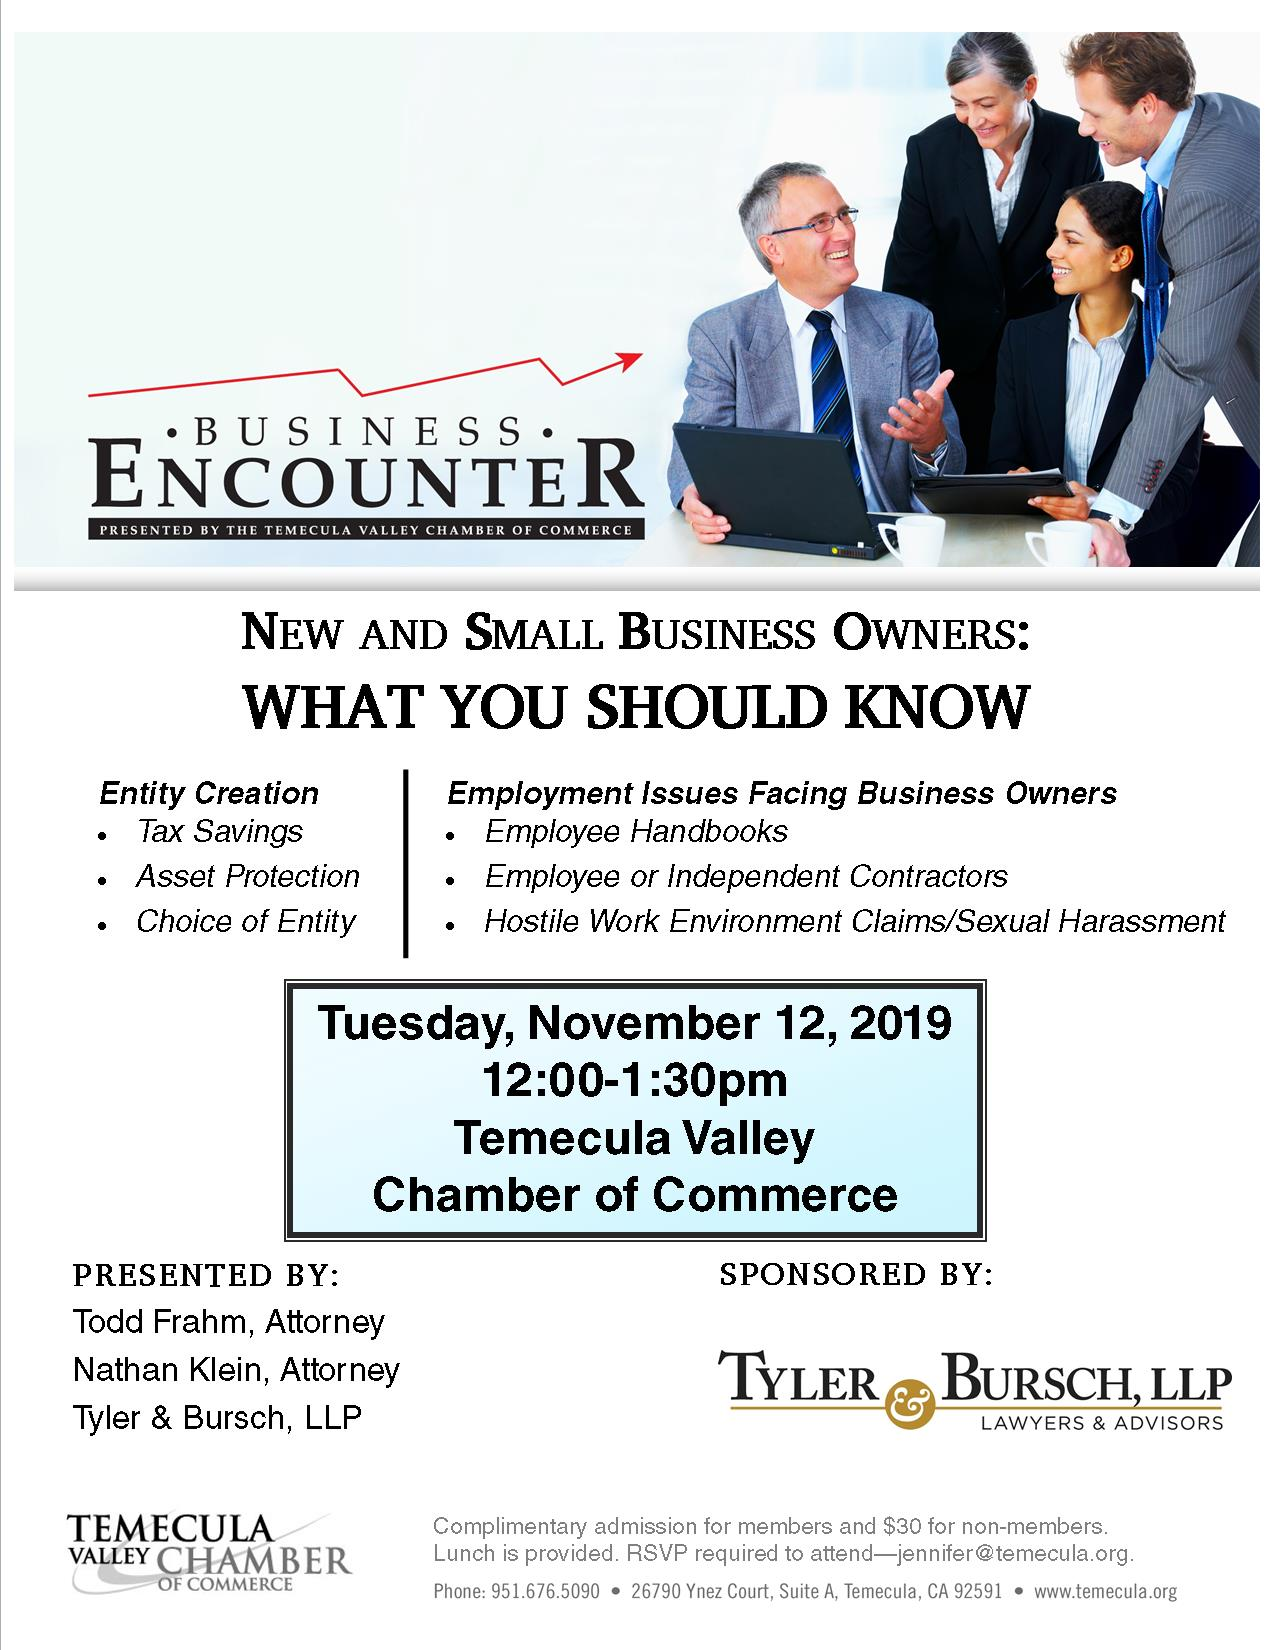 Business Encounter Seminar @ Temecula Valley Chamber of Commerce